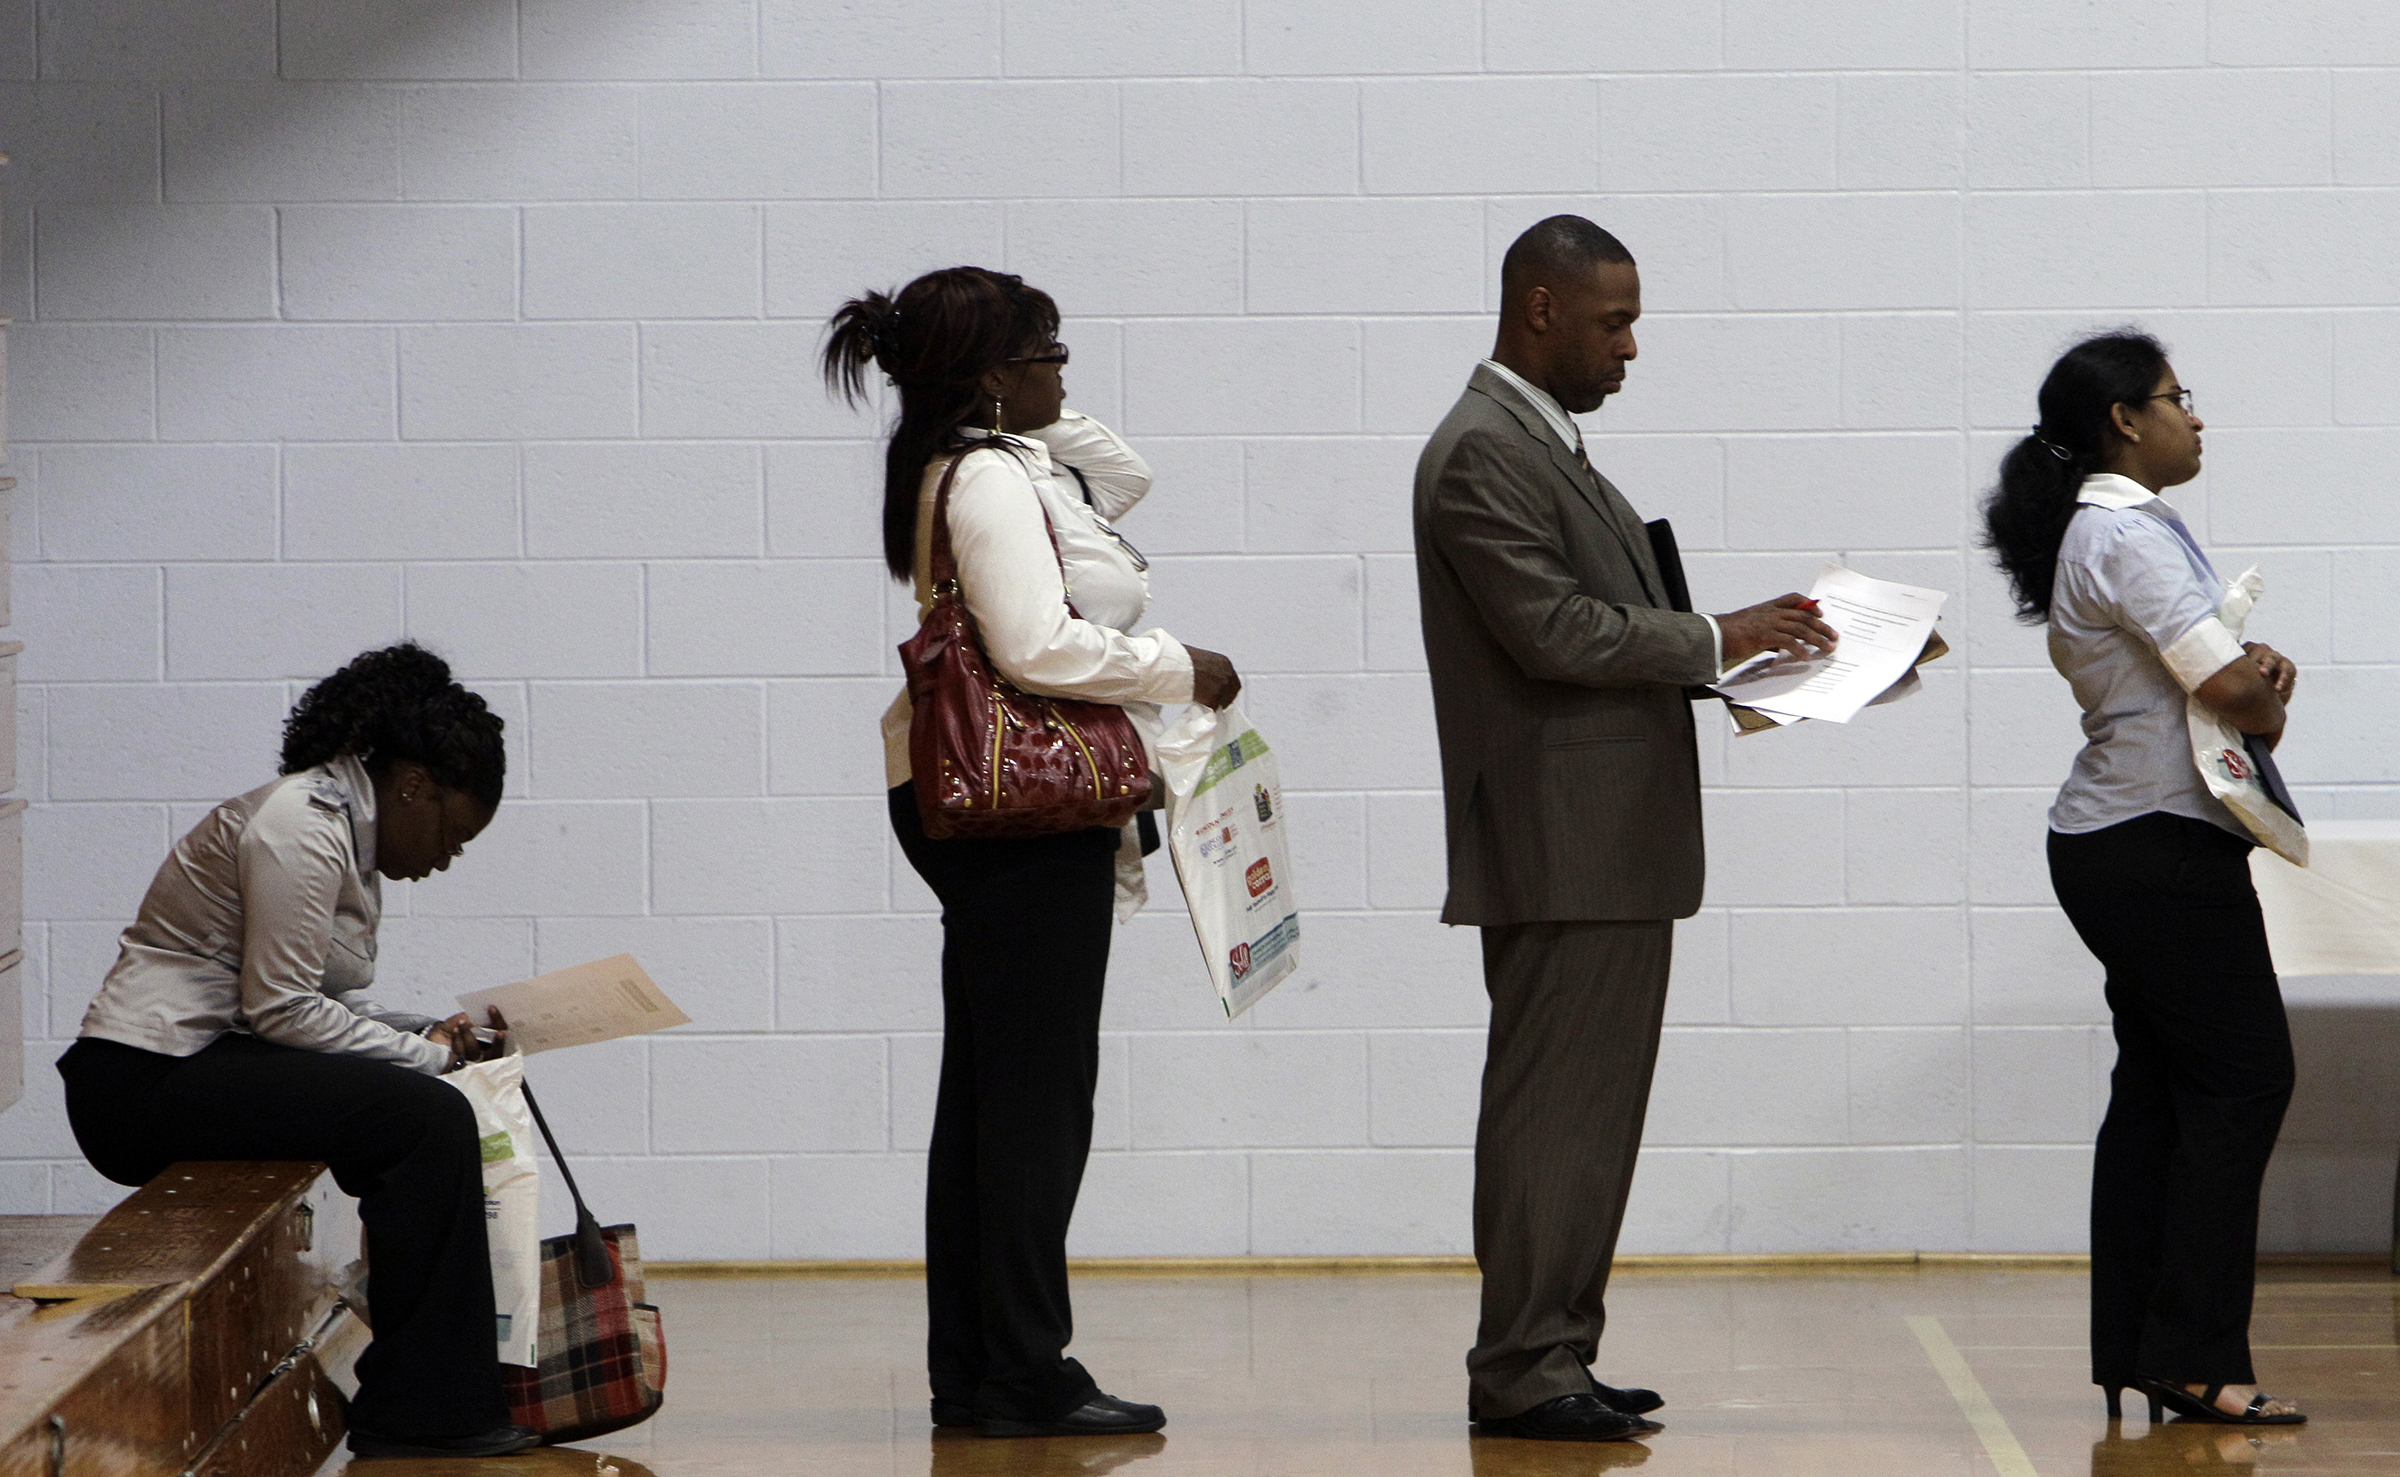 Job seekers wait in a line at a job fair in Southfield, Michigan on June 15, 2011.